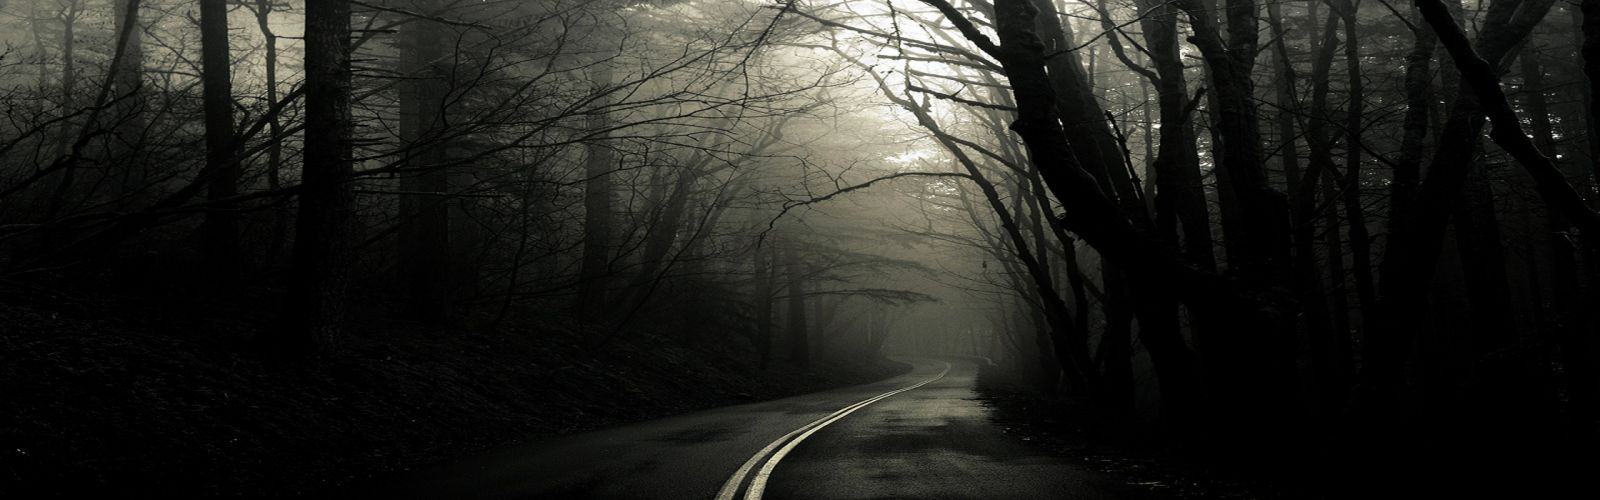 forests fog roads Greg Martin wallpaper